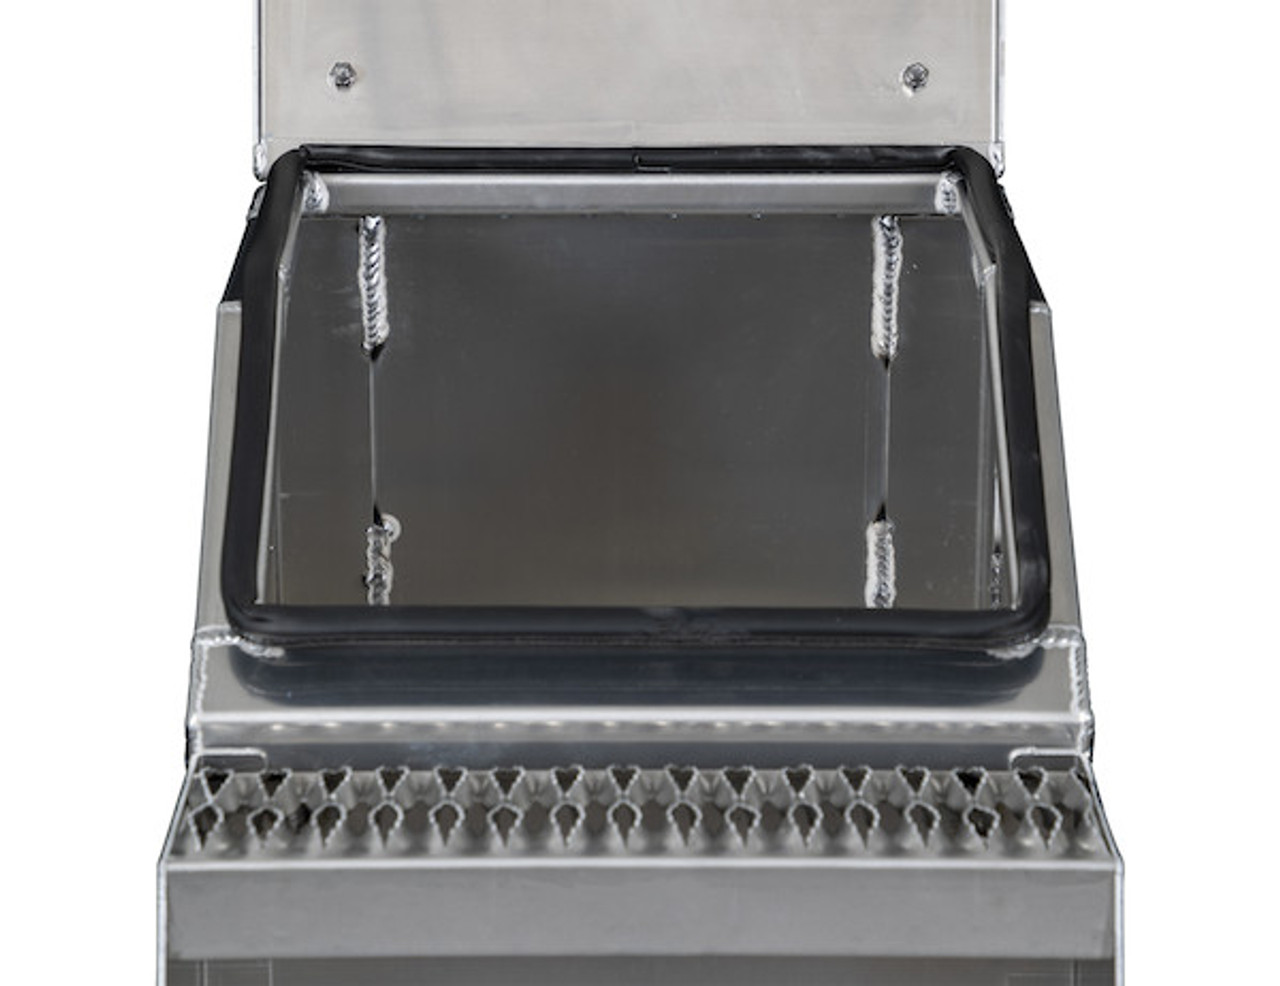 1705281 BUYERS PRODUCTS WideOpen™ Class 8 Step Tool Box For Semi Trucks - 18 Inch Width 5